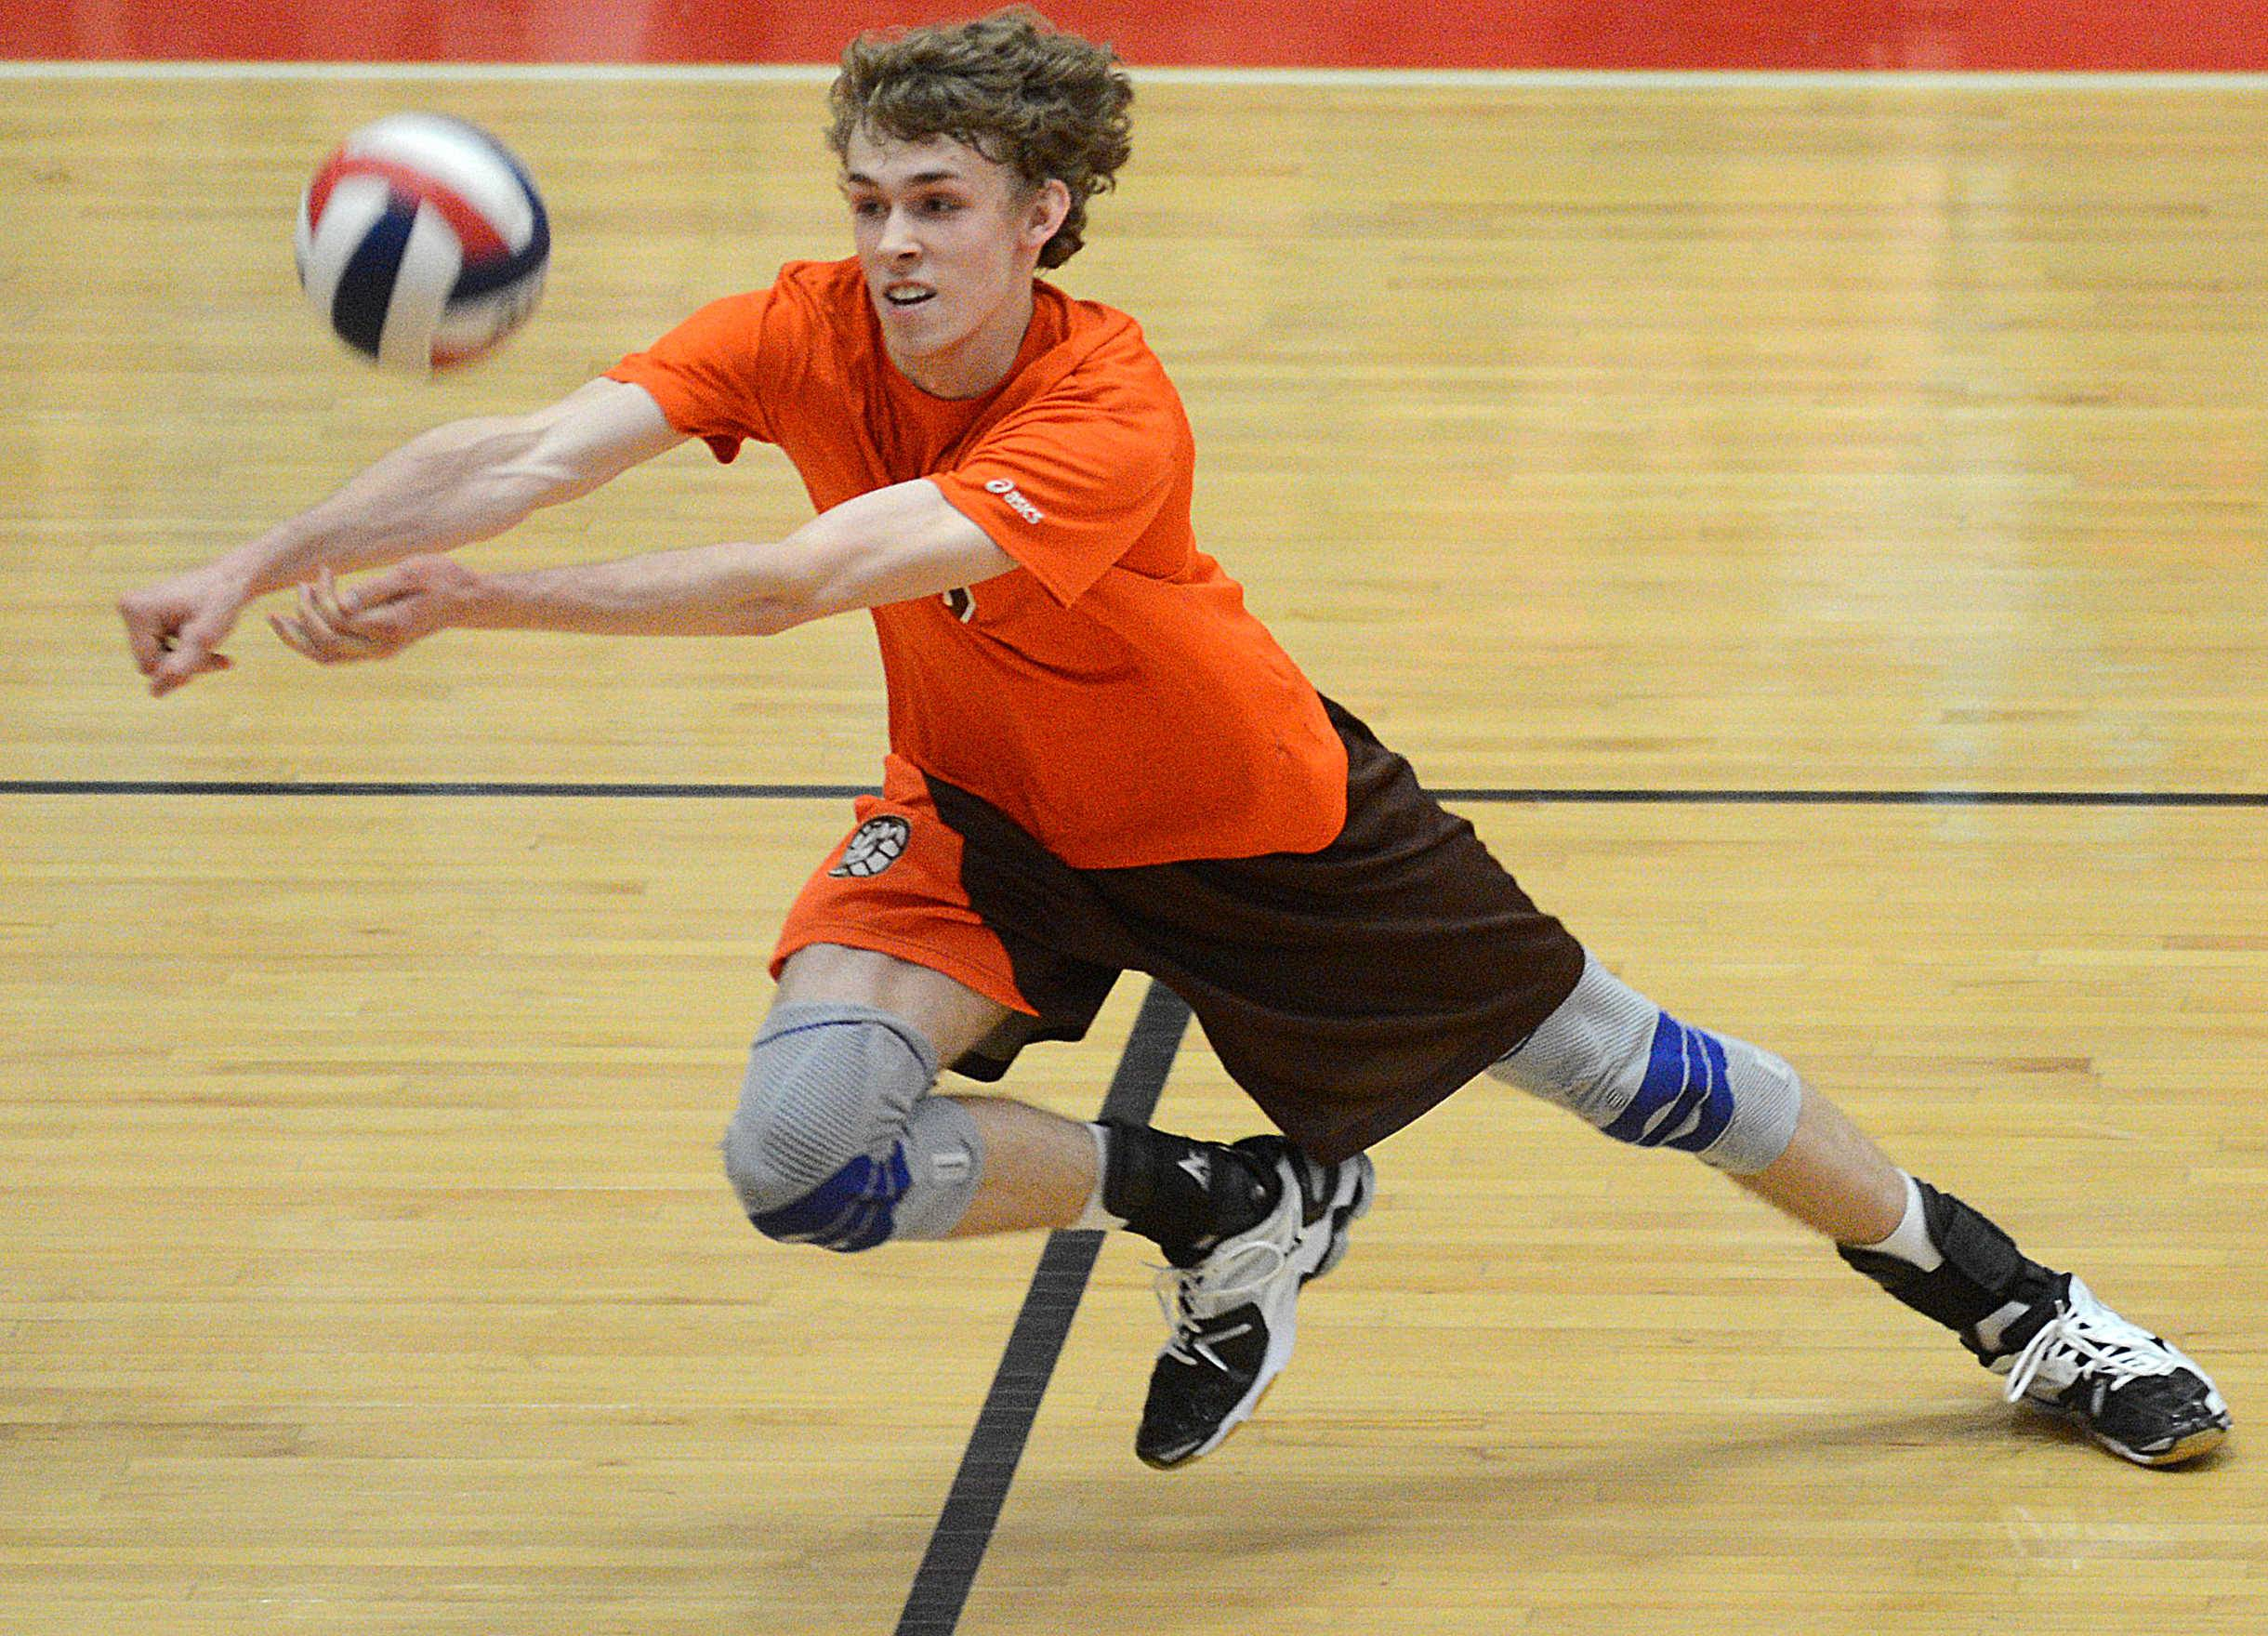 Hersey's Bart Migus dives for the ball during Wednesday's MSL championship match.